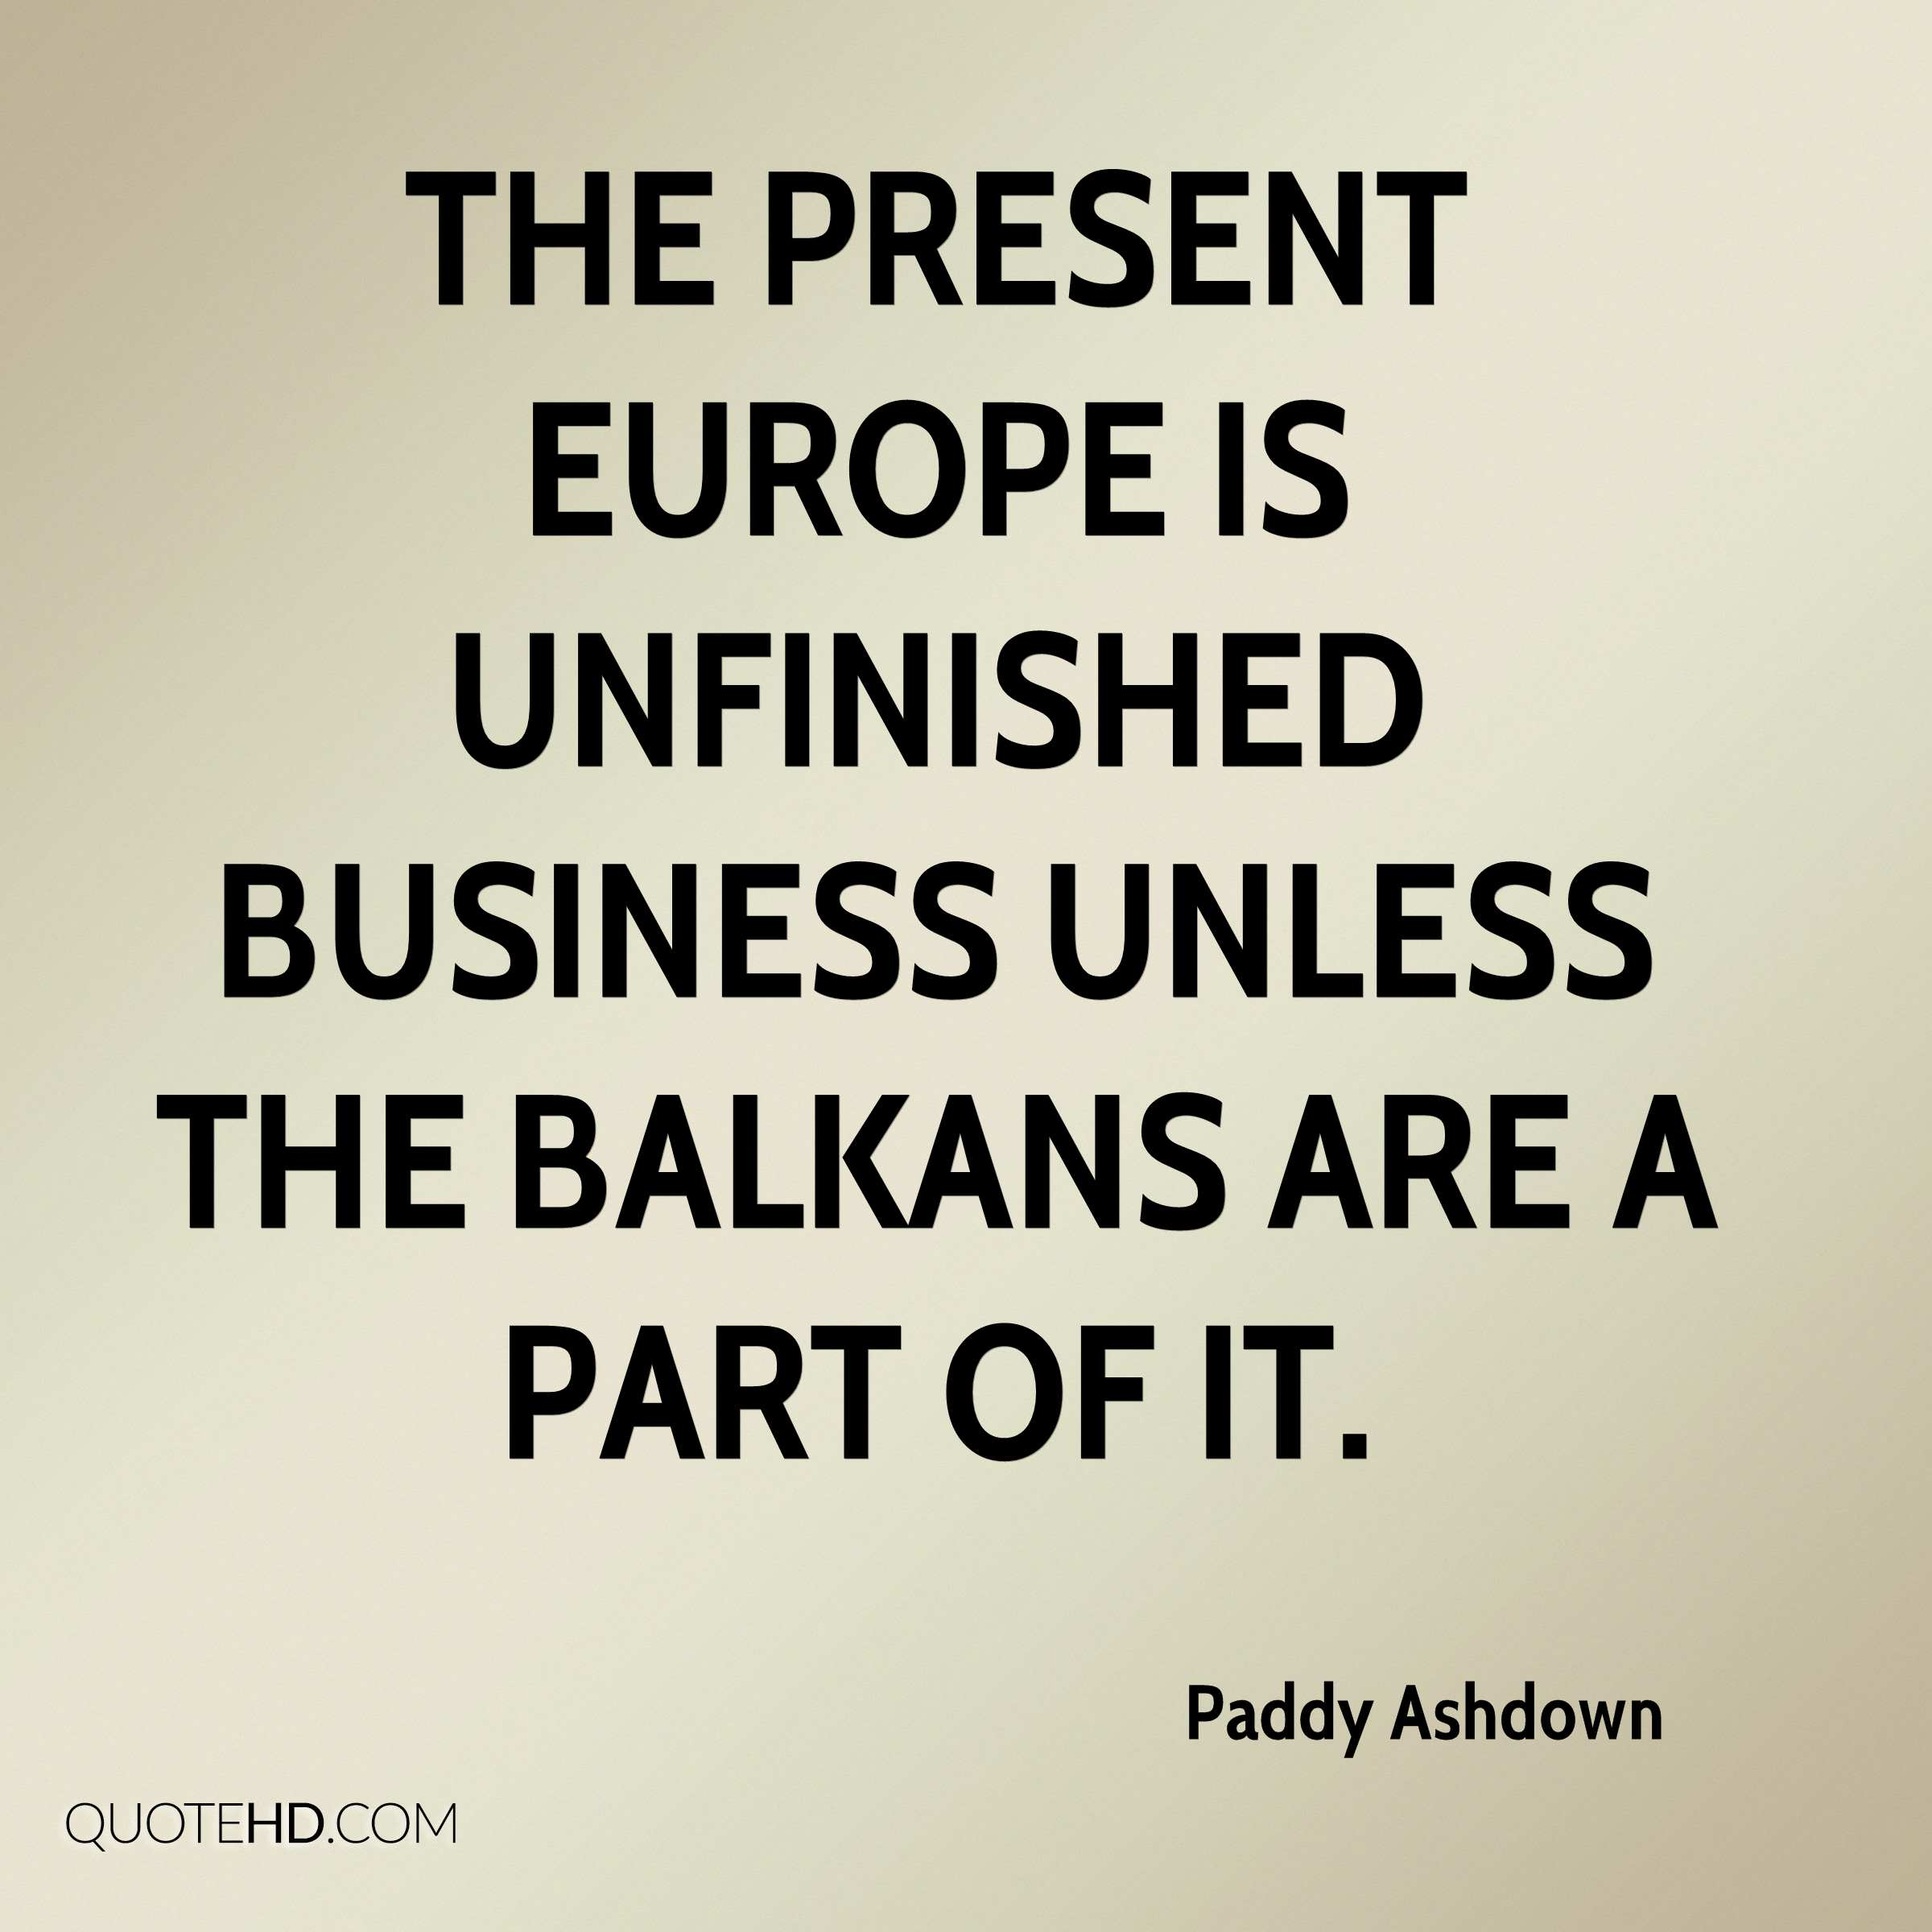 The present Europe is unfinished business unless the Balkans are a part of it.